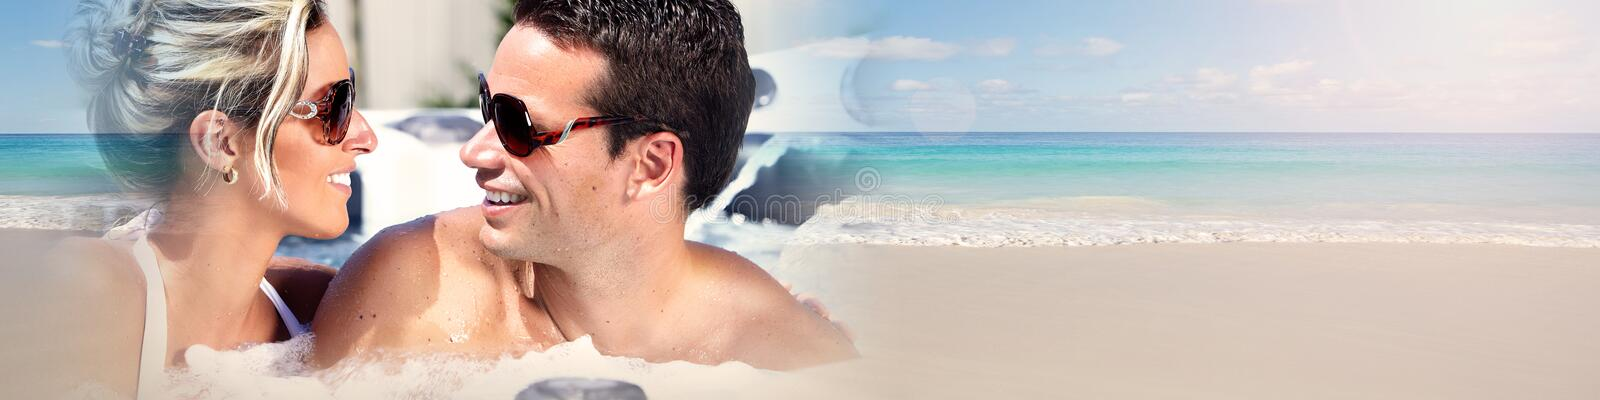 Young couple on beach. Woman and men happy couple sunbathing on the beach royalty free stock image